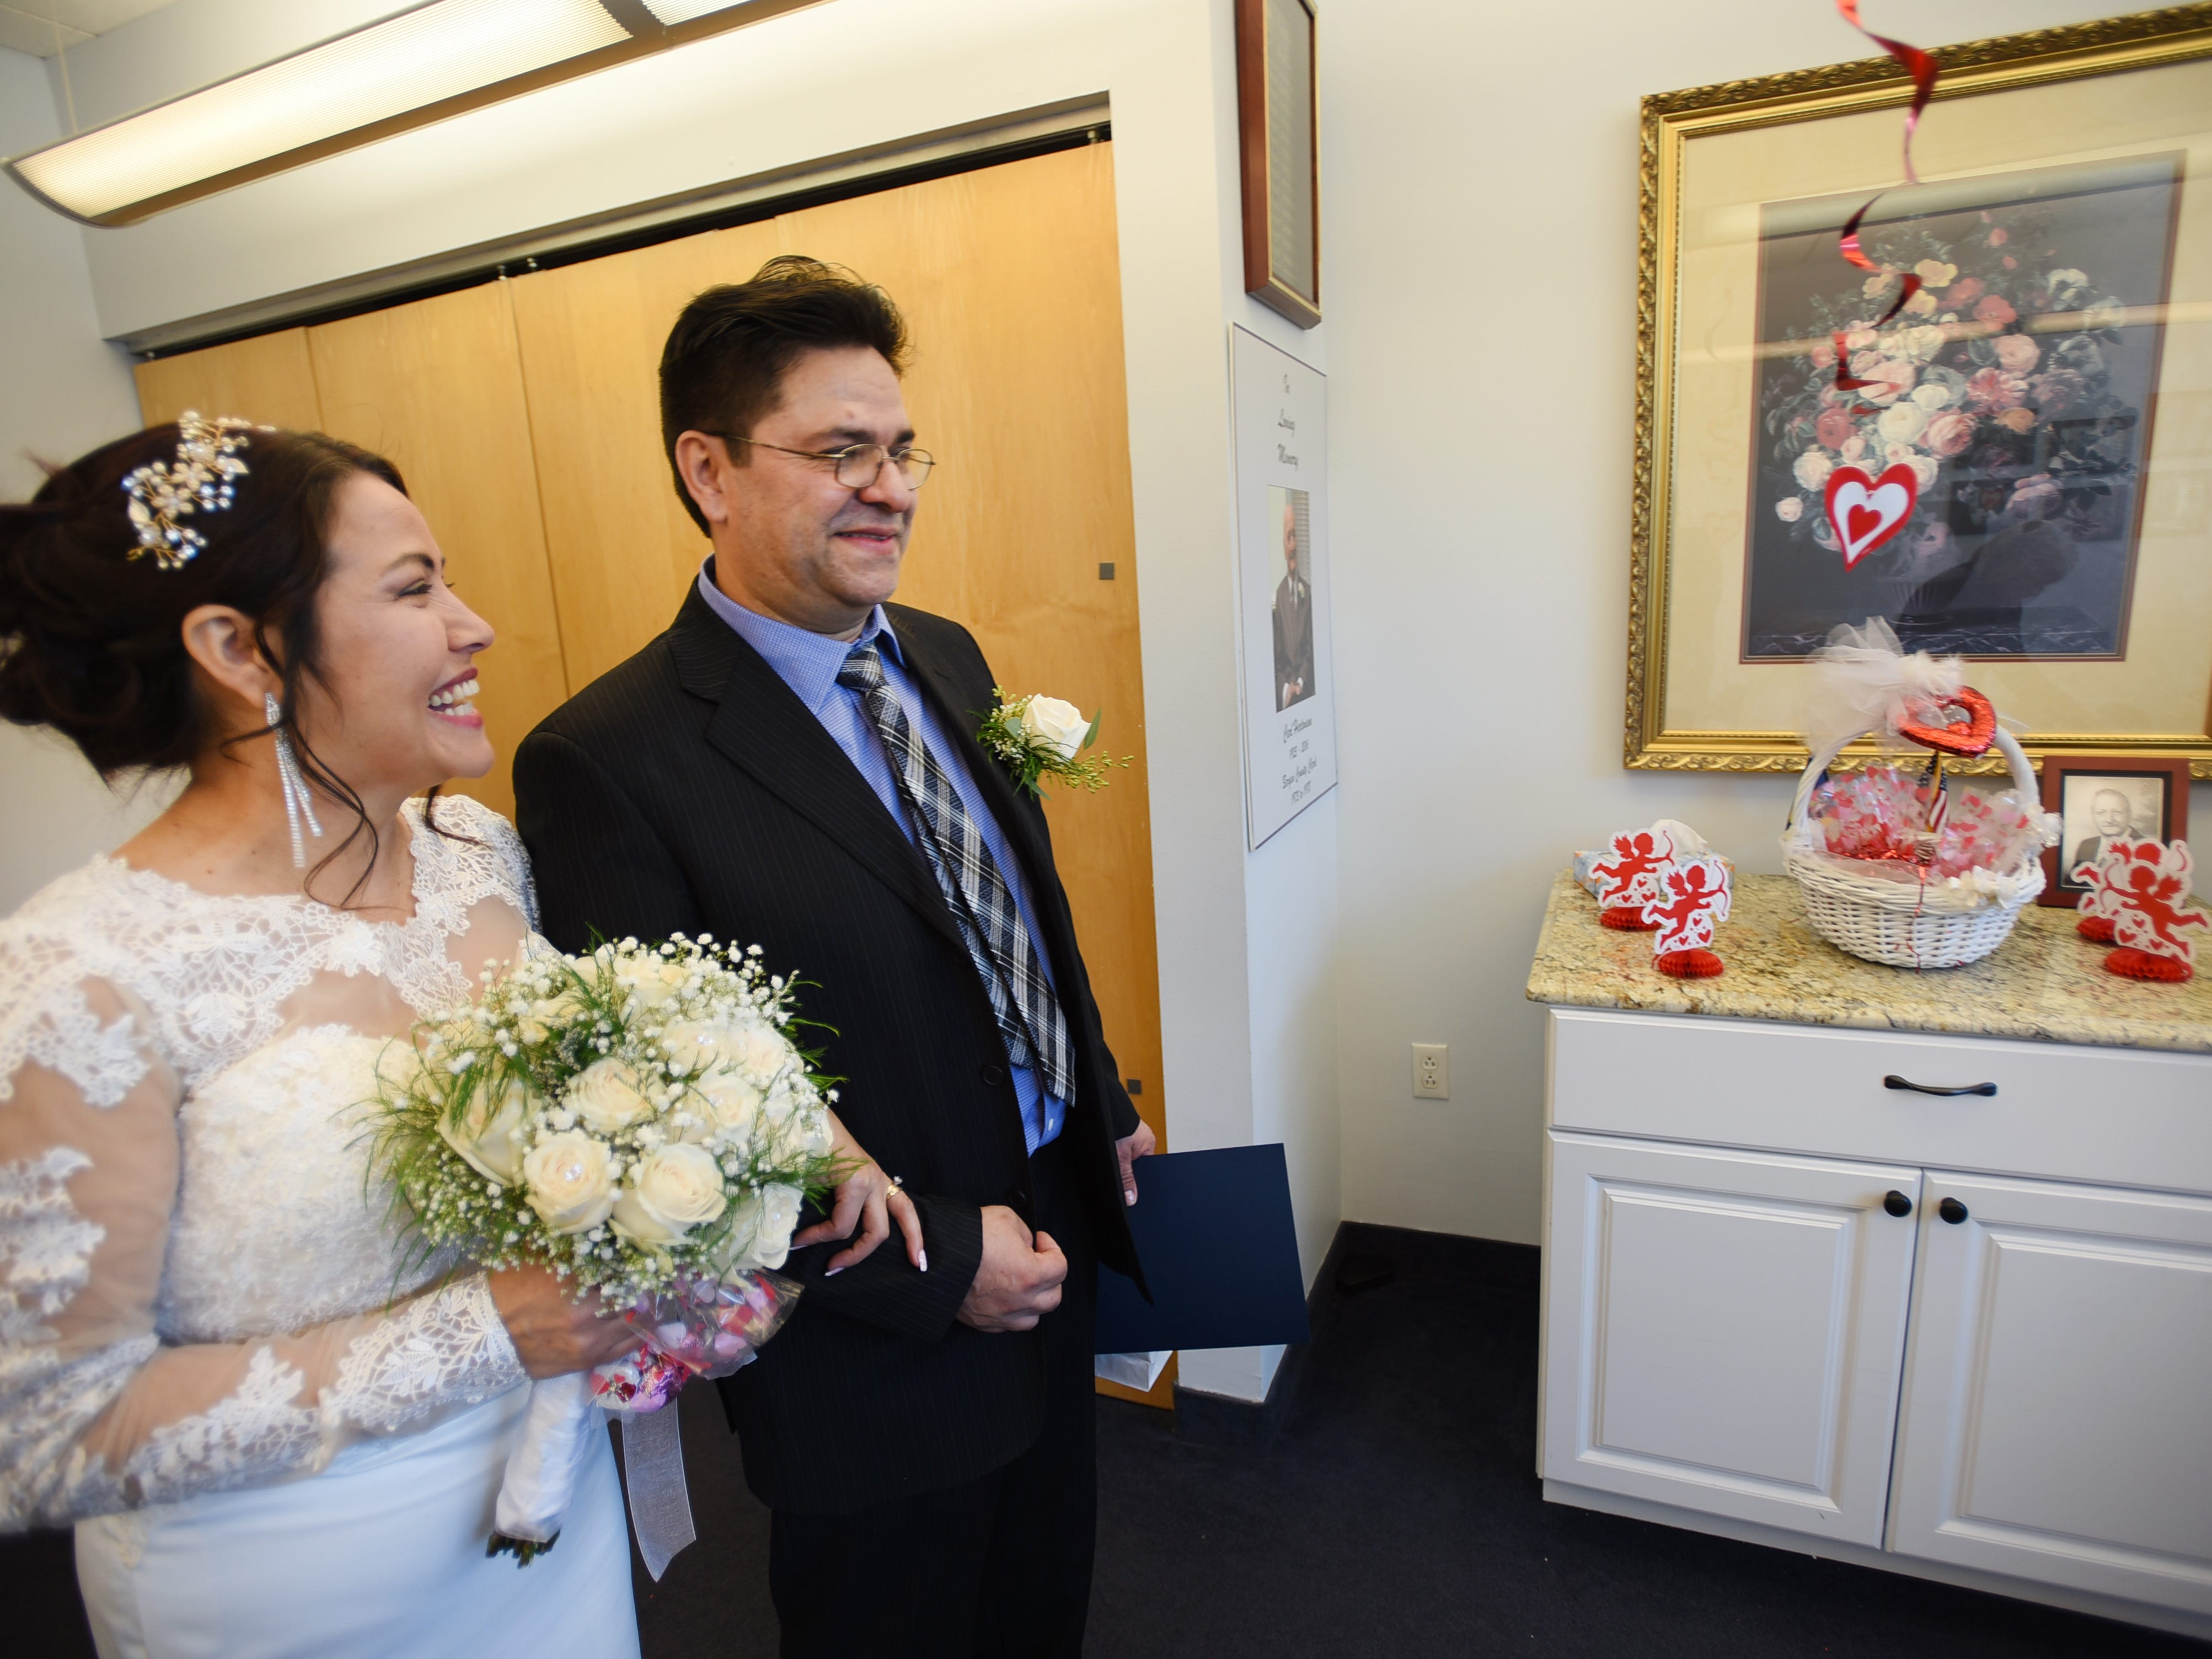 After being announced as a husband and a wife, Gloria Gallego and Alexander Gutierrez of Englewood, smile following their wedding ceremony, located at Bergen County Plaza in Hackensack on 02/14/19.